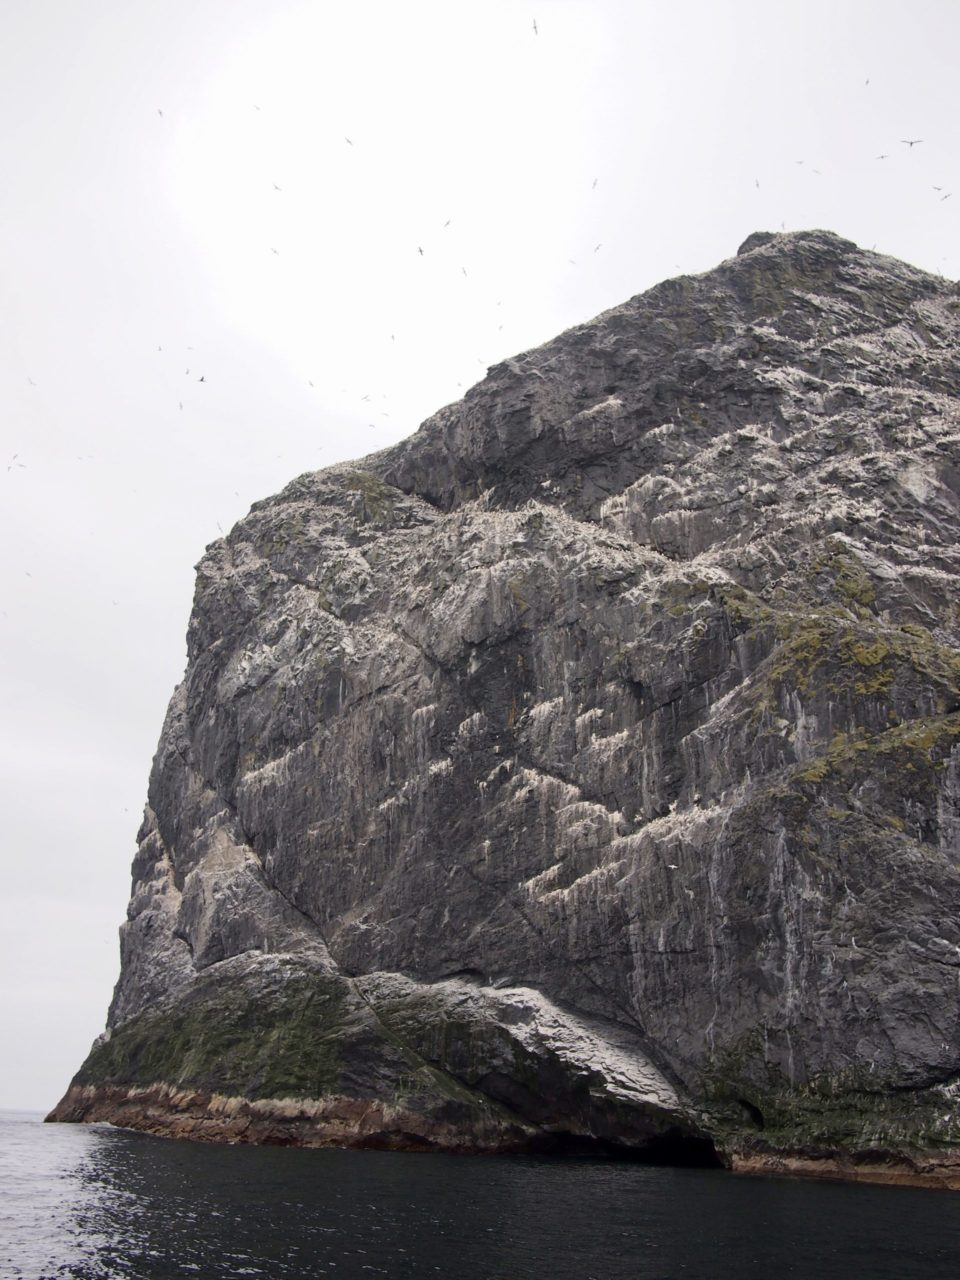 Sea stack with whirling gannets, St Kilda